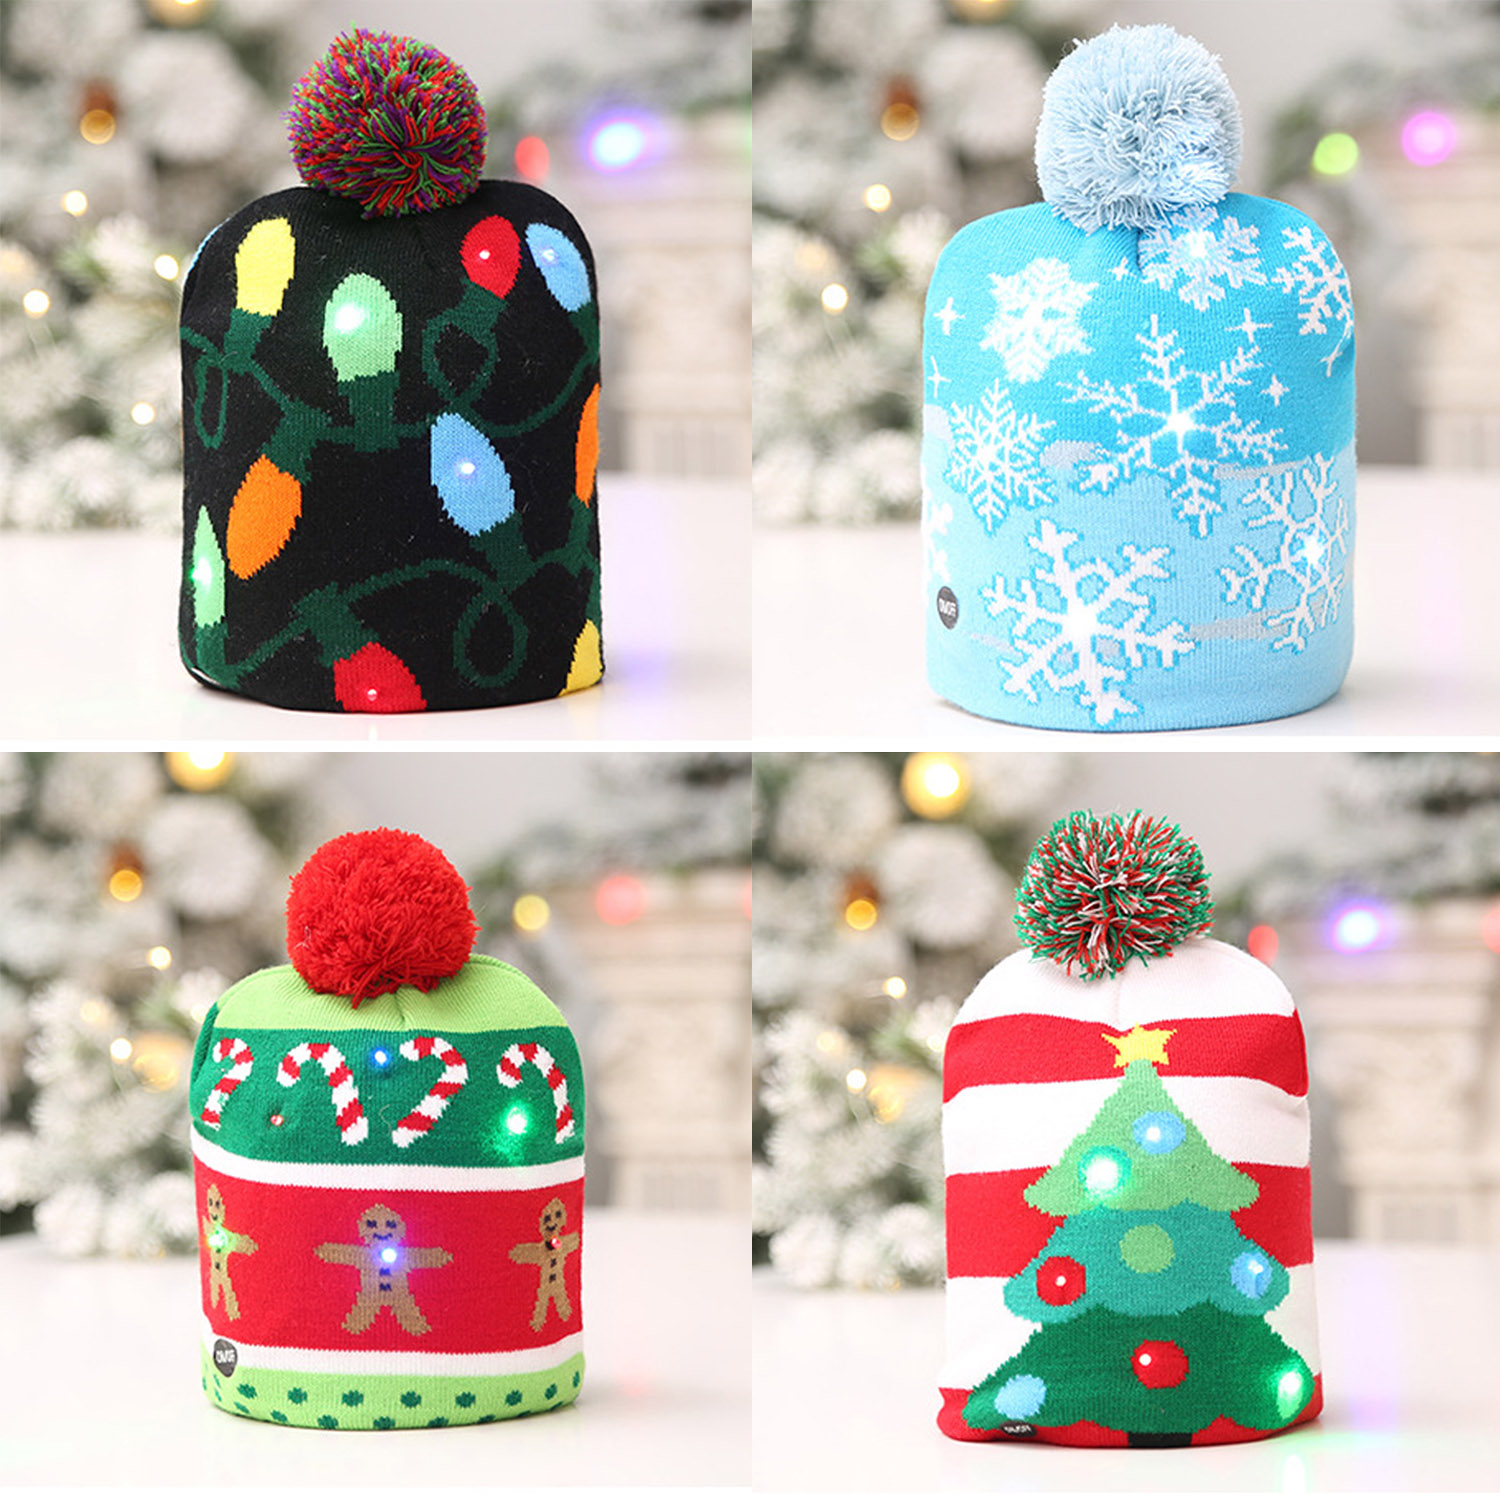 Creative Cute Unisex Fashion Warm LED Christmas Winter Knitted Knitting Hat Adults Kids Party Carnival Celebration Toys Gifts